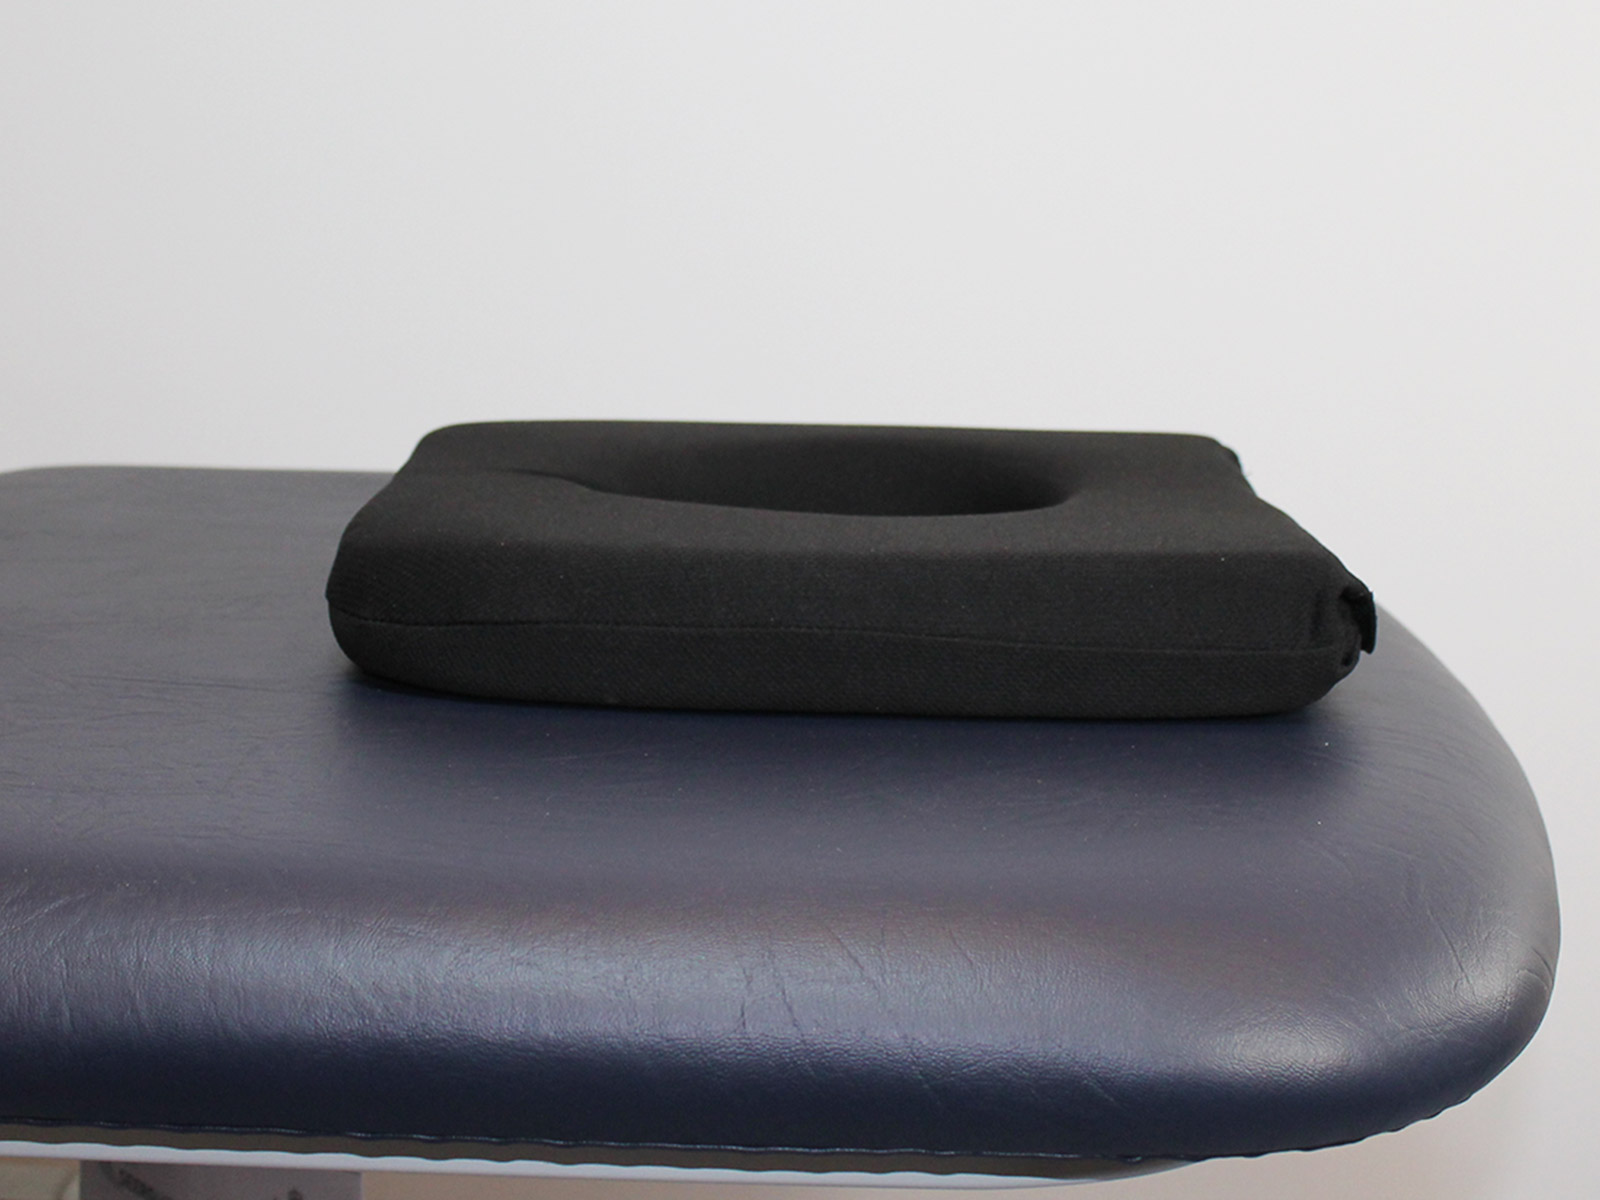 Buy Memory Foam Couch Face Cushion From Physique